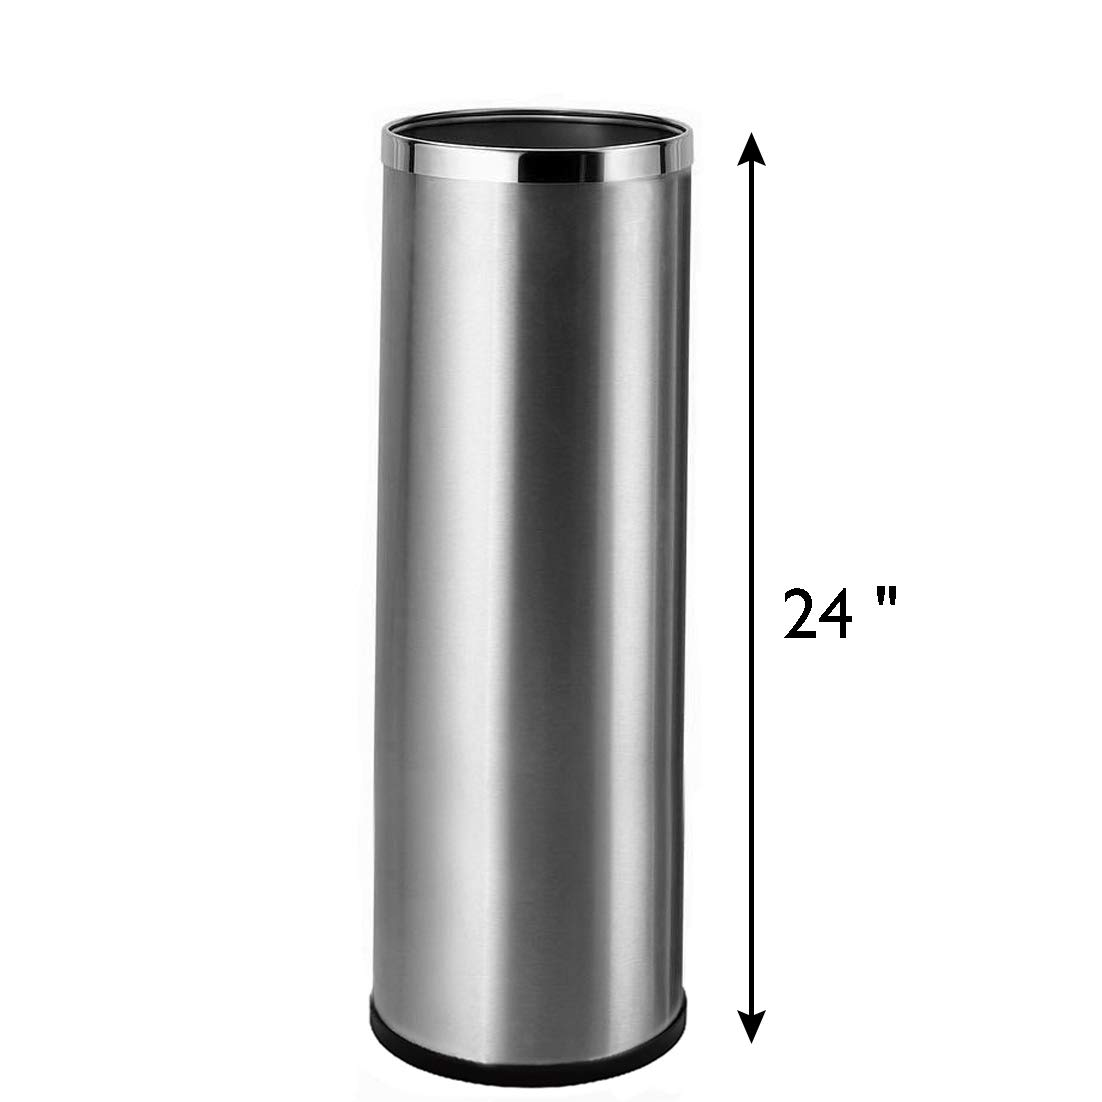 Bennett Umbrella Stand, Stainless Steel Round Style, w/Removable Inner Bucket 24'' Tall, Entry Hallway Décor Home, Office Decoration Rack Holds Umbrellas Canes Walking Sticks Great Gift Idea